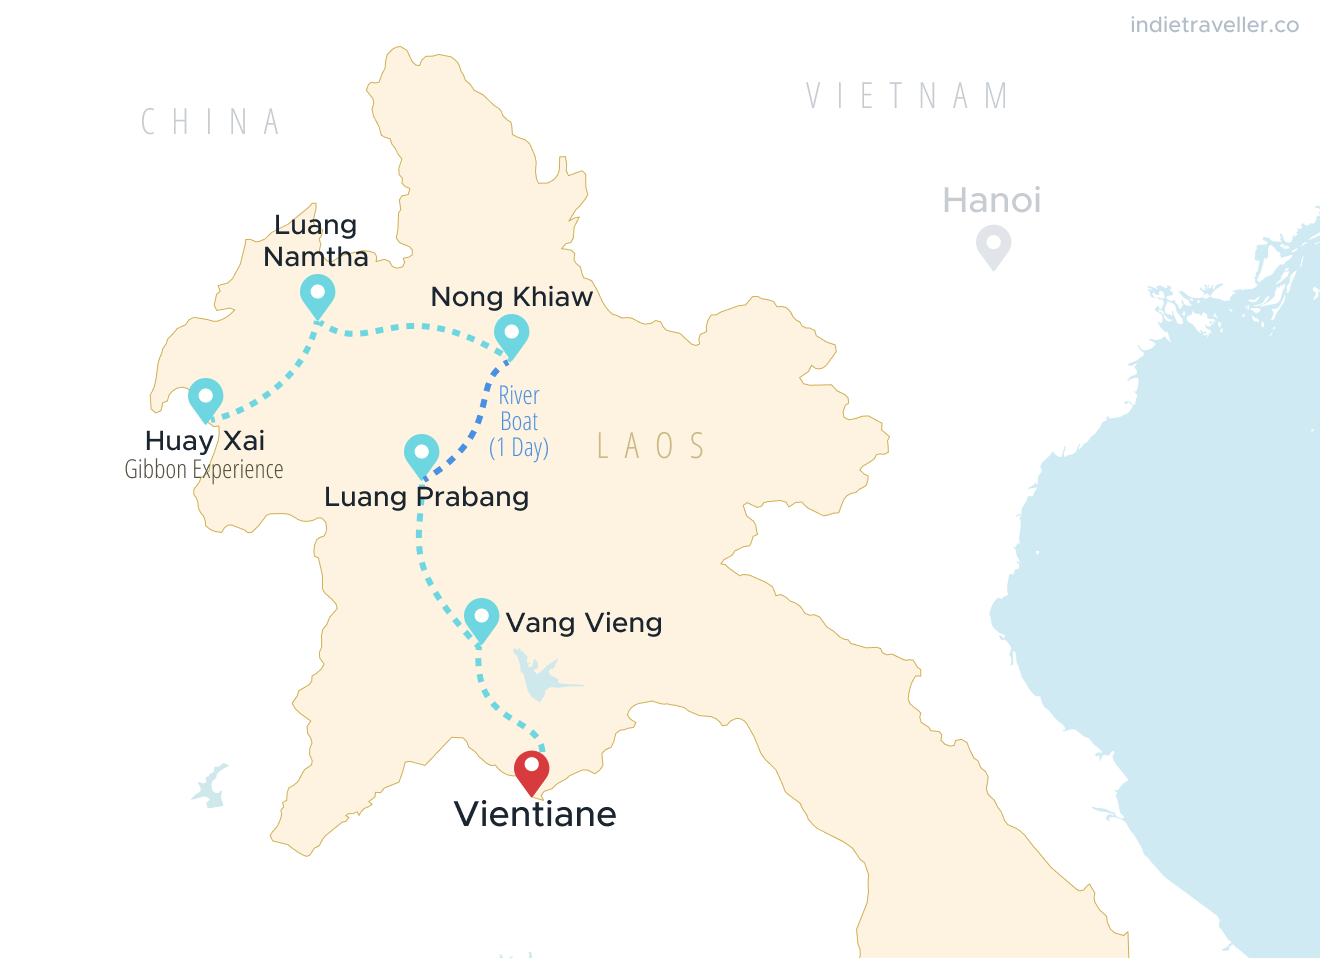 Map of northern Laos showing a 2 week itinerary, stopping in Huay Xai, Luang Namtja, Nong Khiaw, Luang Prabang, Vang Vieng and Vientiane